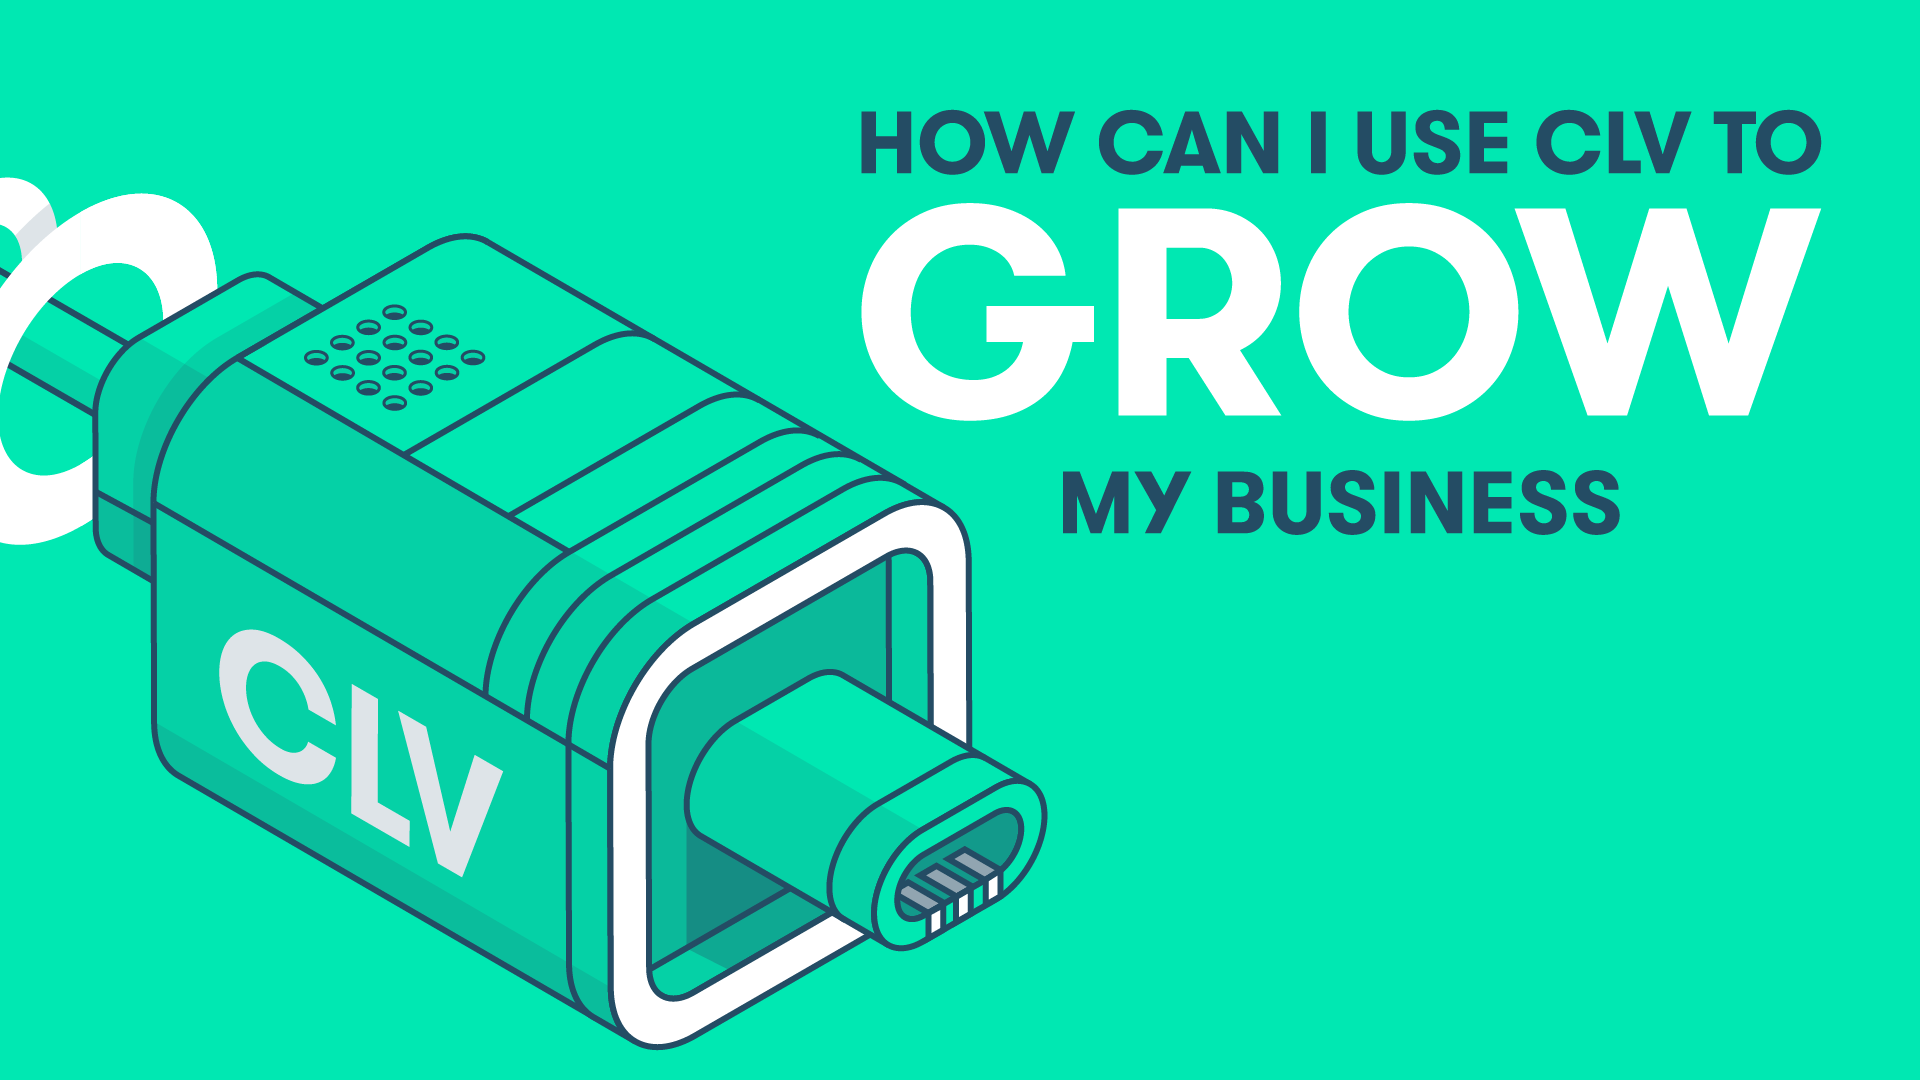 Image of how to use CLV to grow your business.